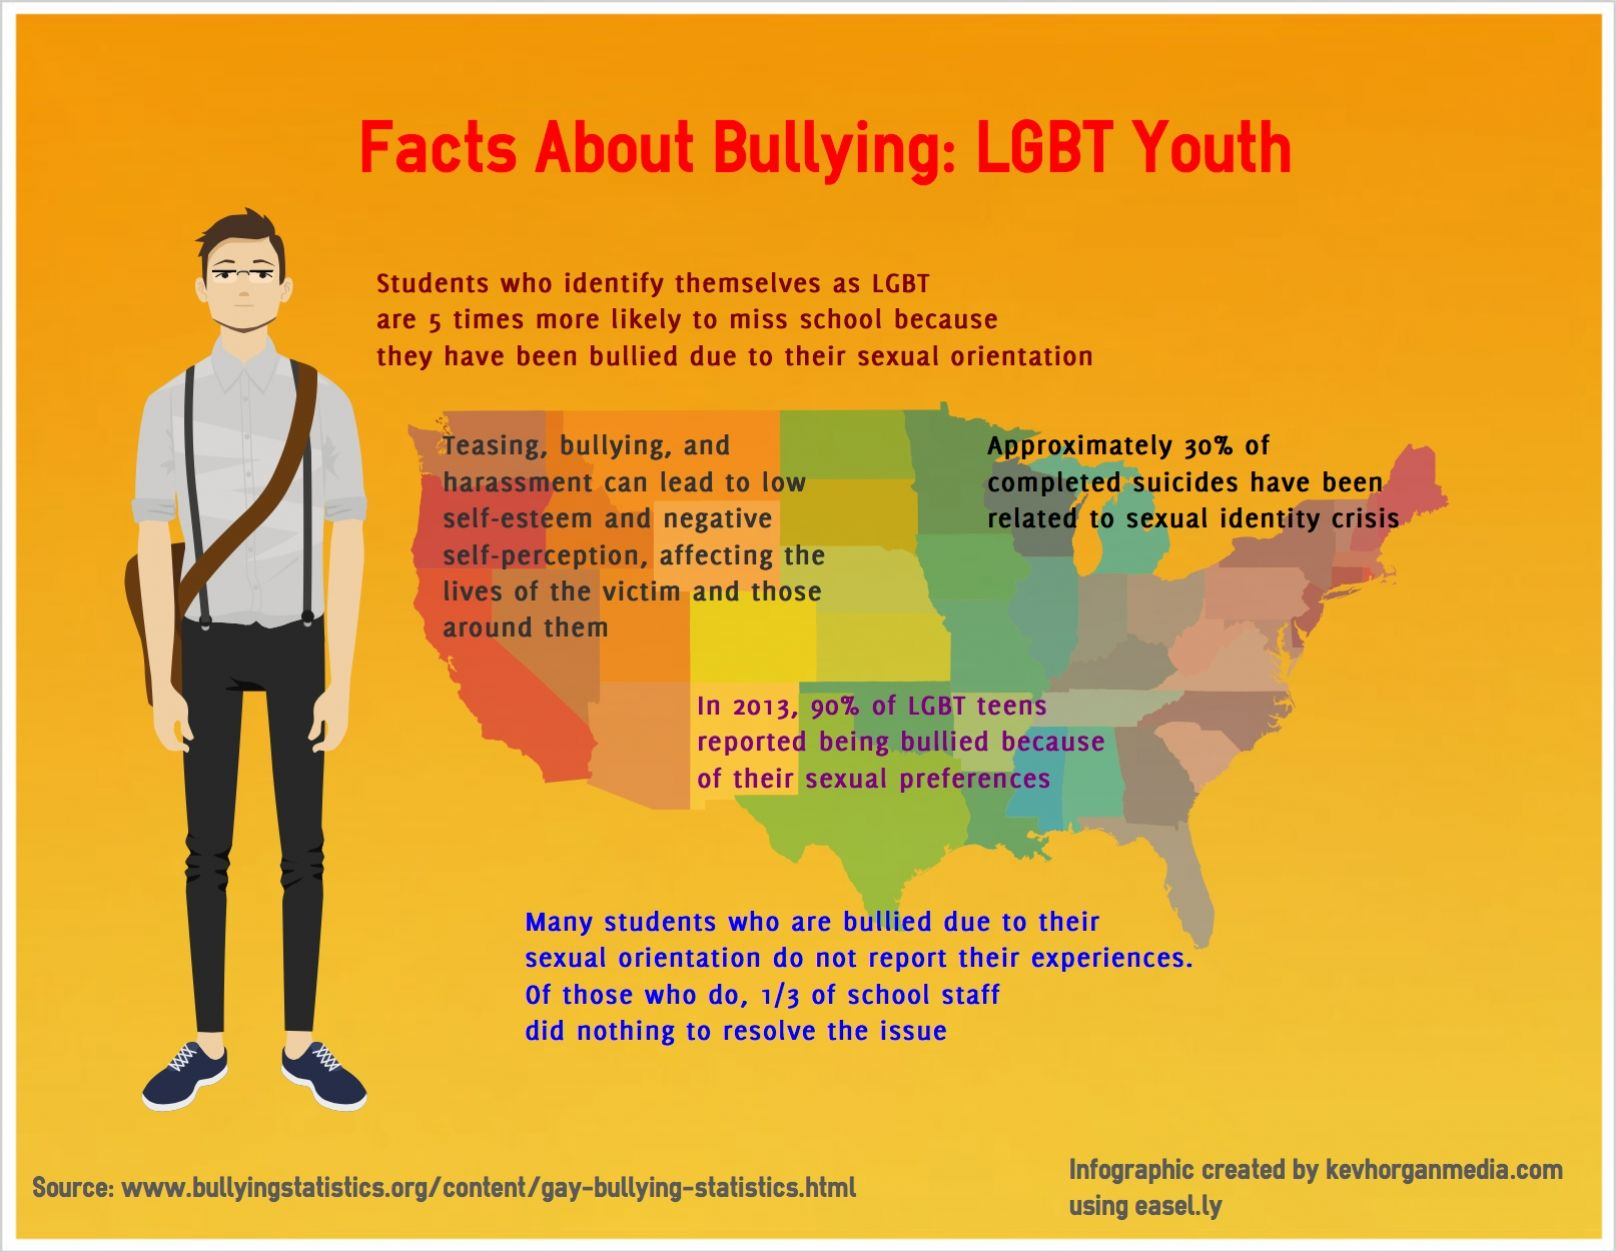 Suicide among LGBT youth